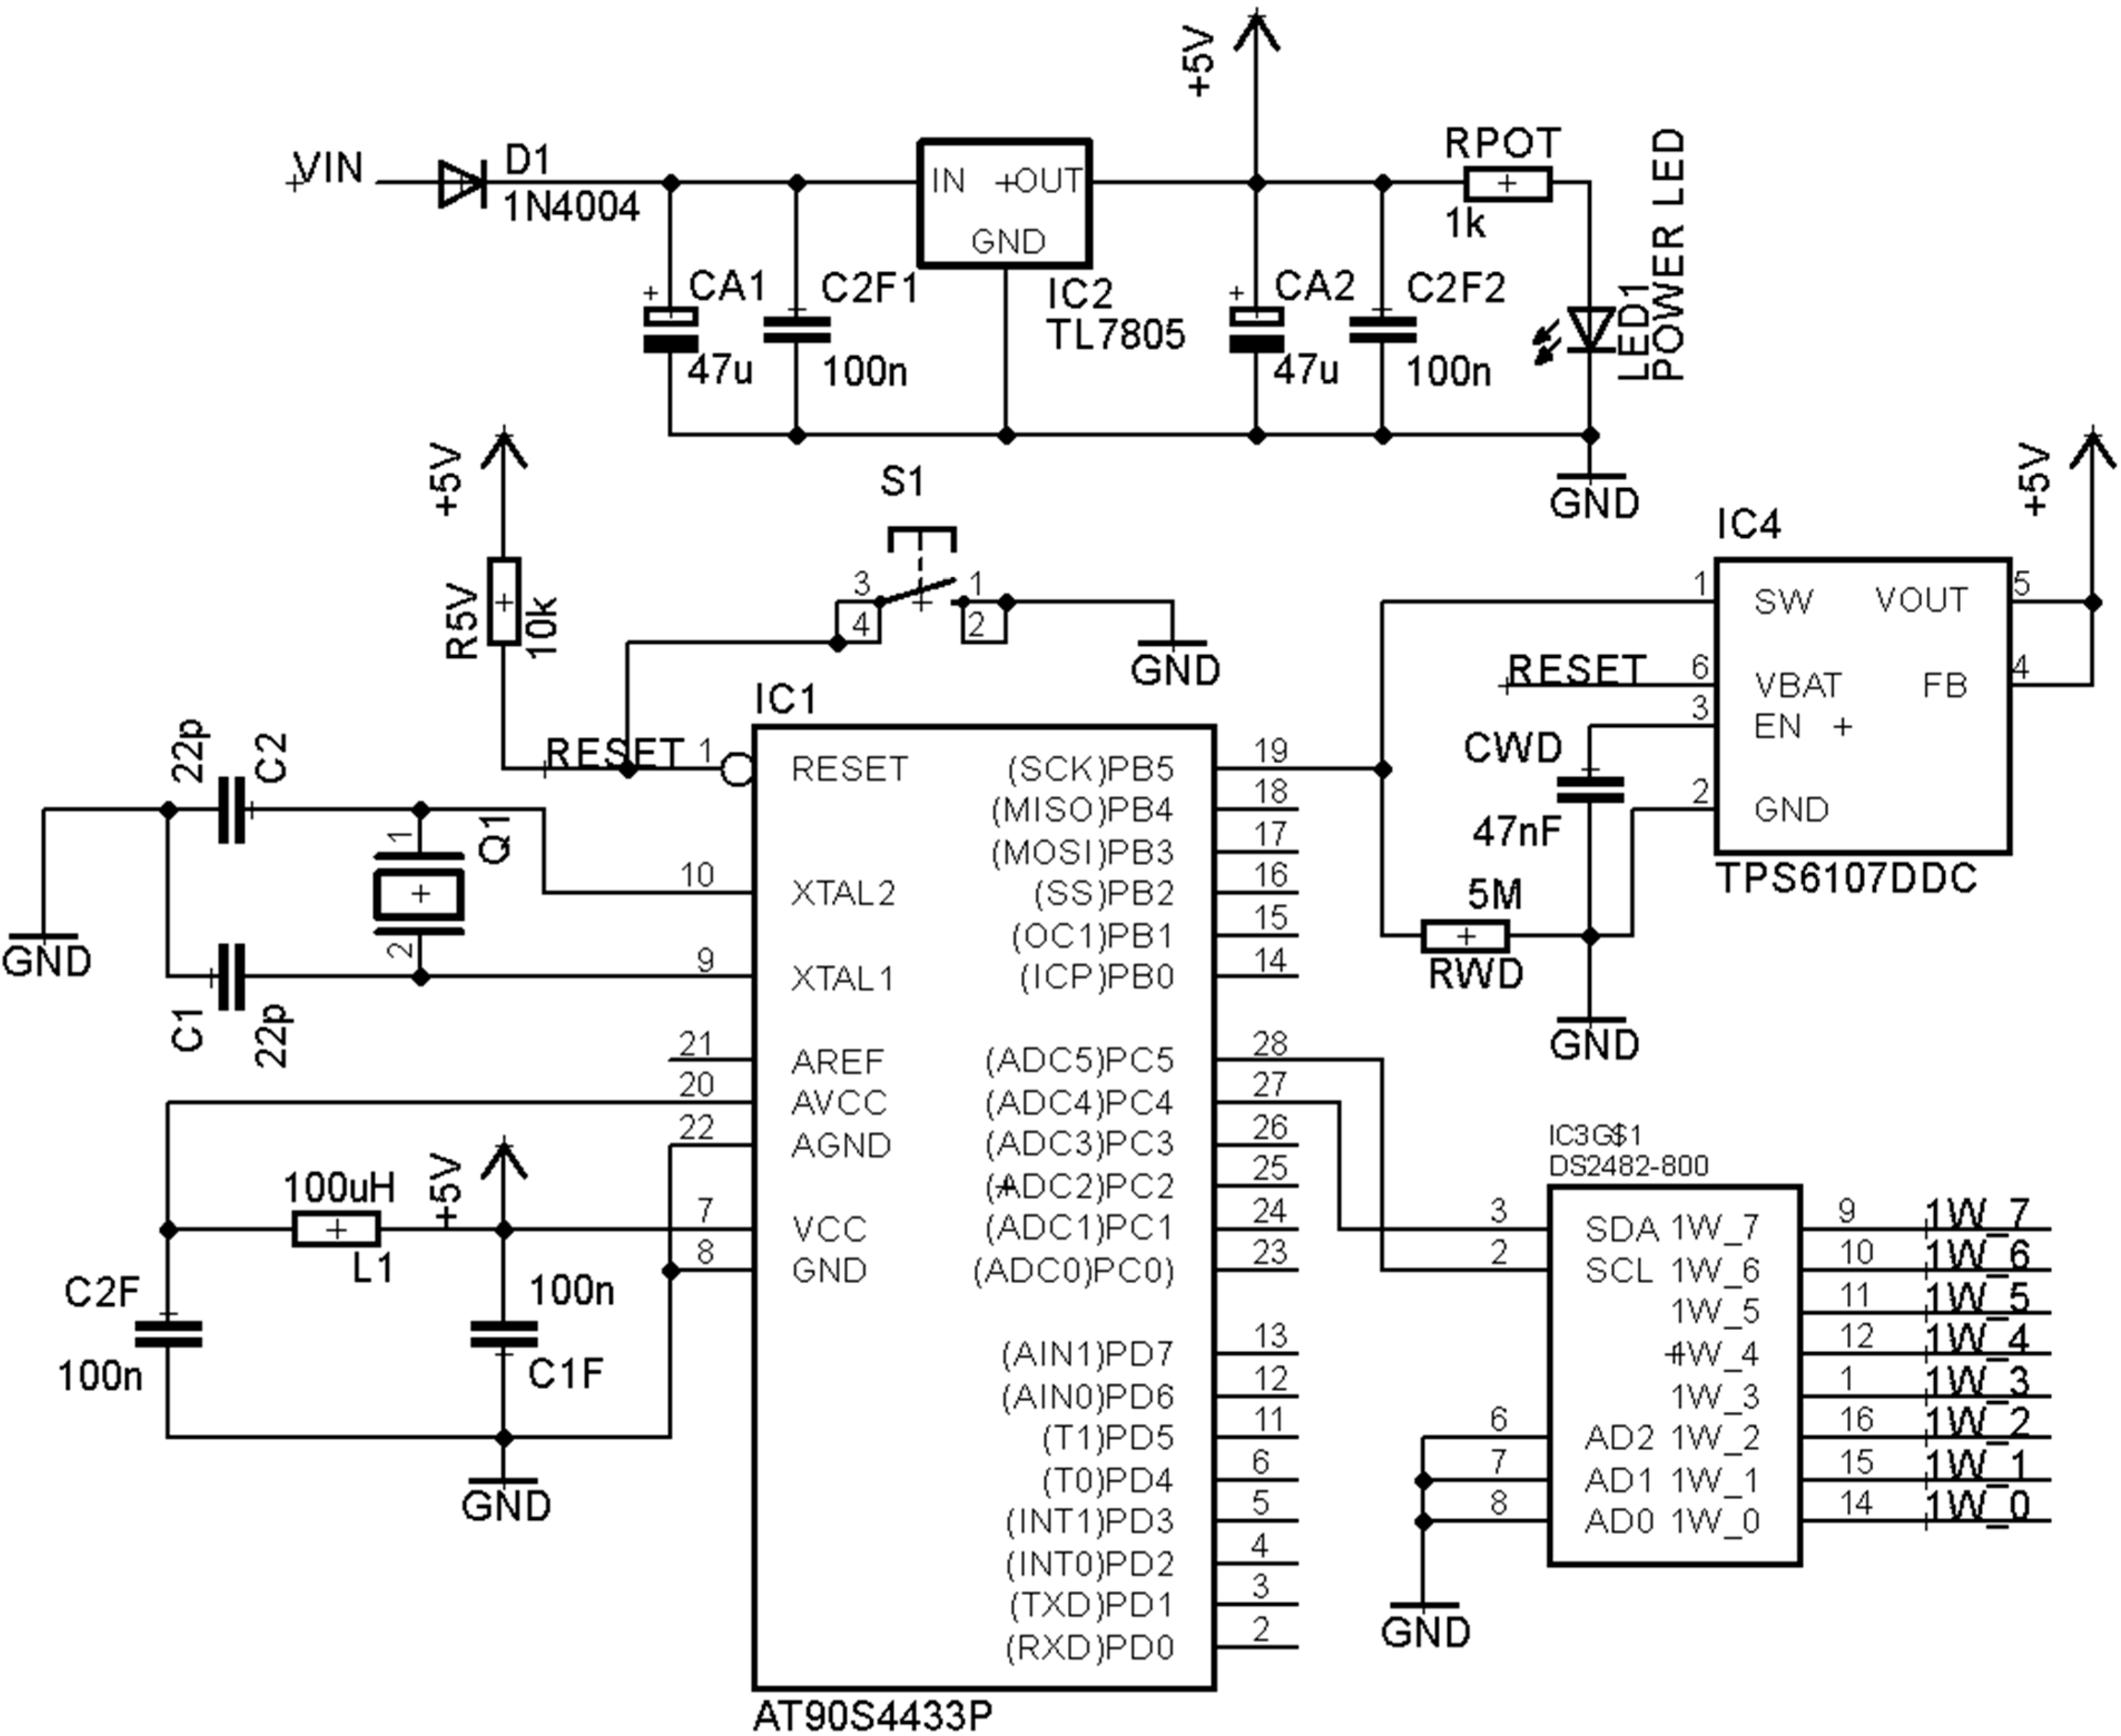 Sensors | Free Full-Text | Design of a Hybrid (Wired/Wireless ... on